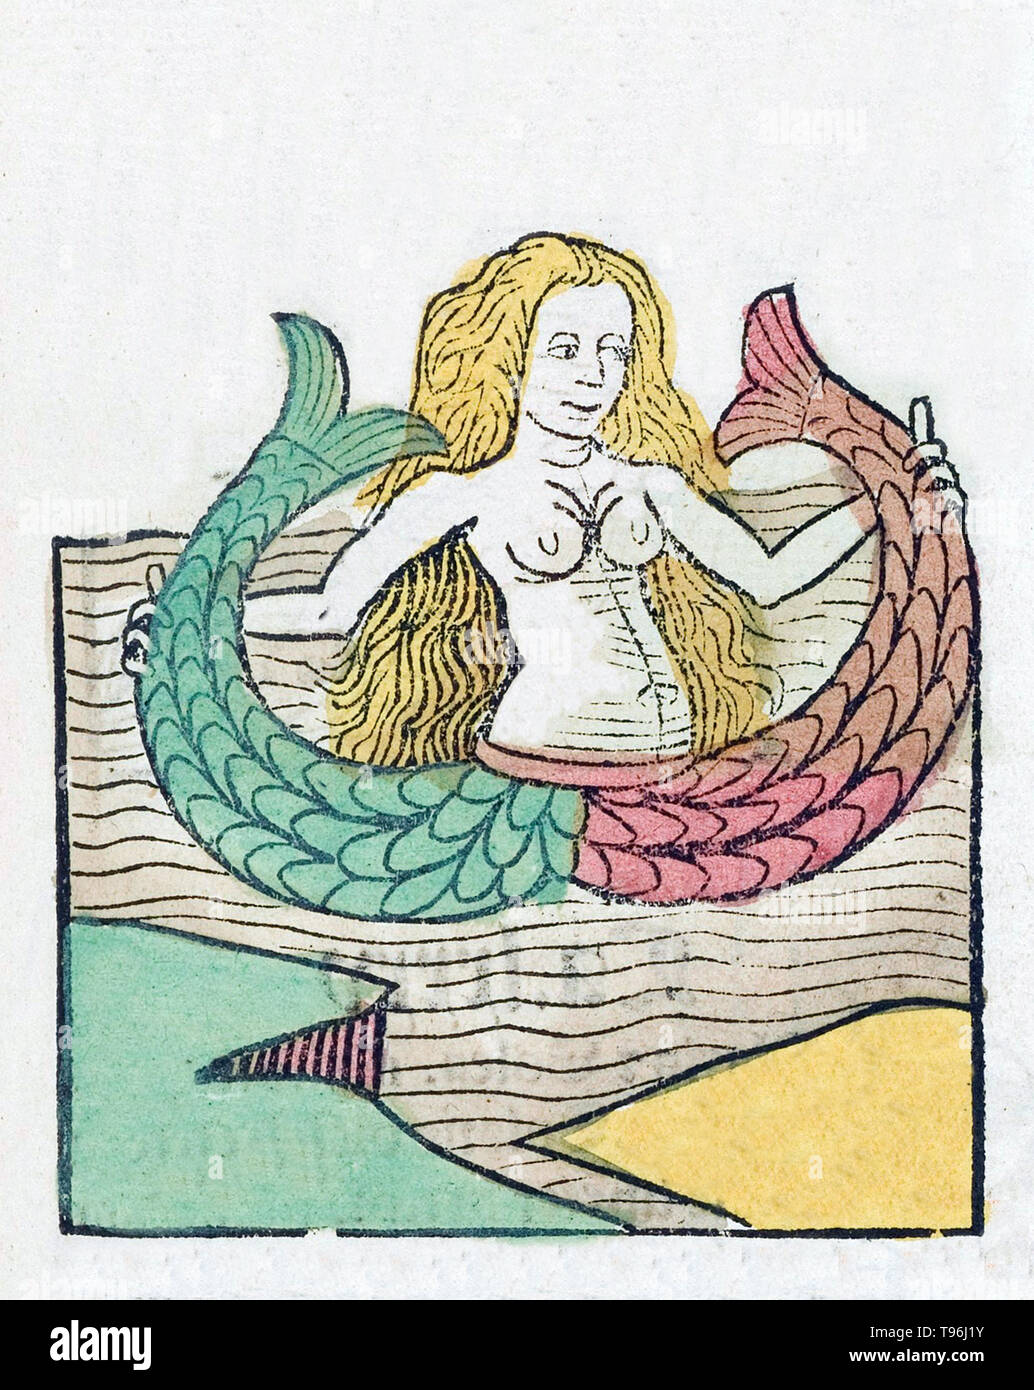 A mermaid is a legendary aquatic creature with the upper body of a female human and the tail of a fish. Mermaids appear in the folklore of many cultures worldwide, including the Near East, Europe, Africa and Asia. Mermaids are sometimes associated with perilous events such as floods, storms, shipwrecks and drownings. In other folk traditions (or sometimes within the same tradition), they can be benevolent or beneficent, bestowing boons or falling in love with humans. The Hortus Sanitatis (Garden of Health), the first natural history encyclopedia, was published by Jacob Meydenbach in Germany, 1 - Stock Image